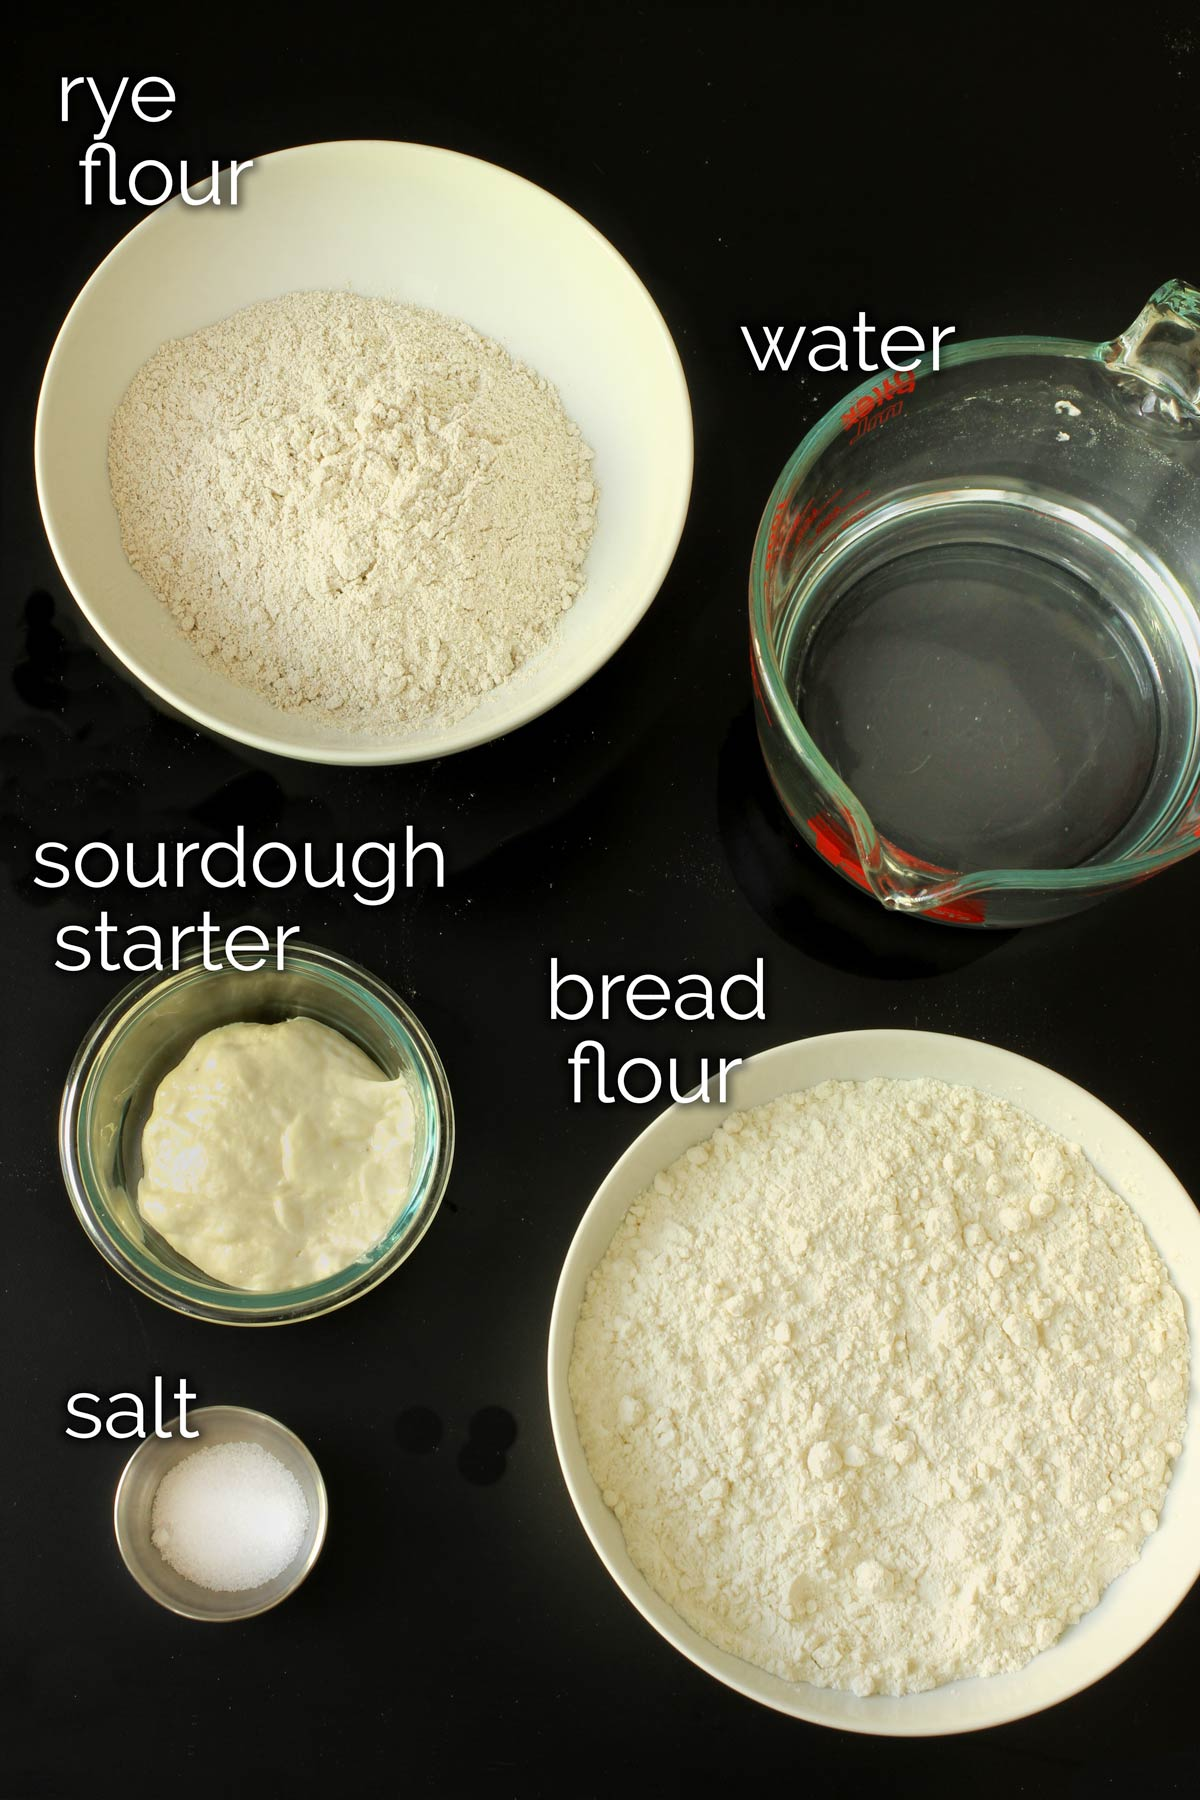 ingredients for sourdough rye bread laid out on tabletop.